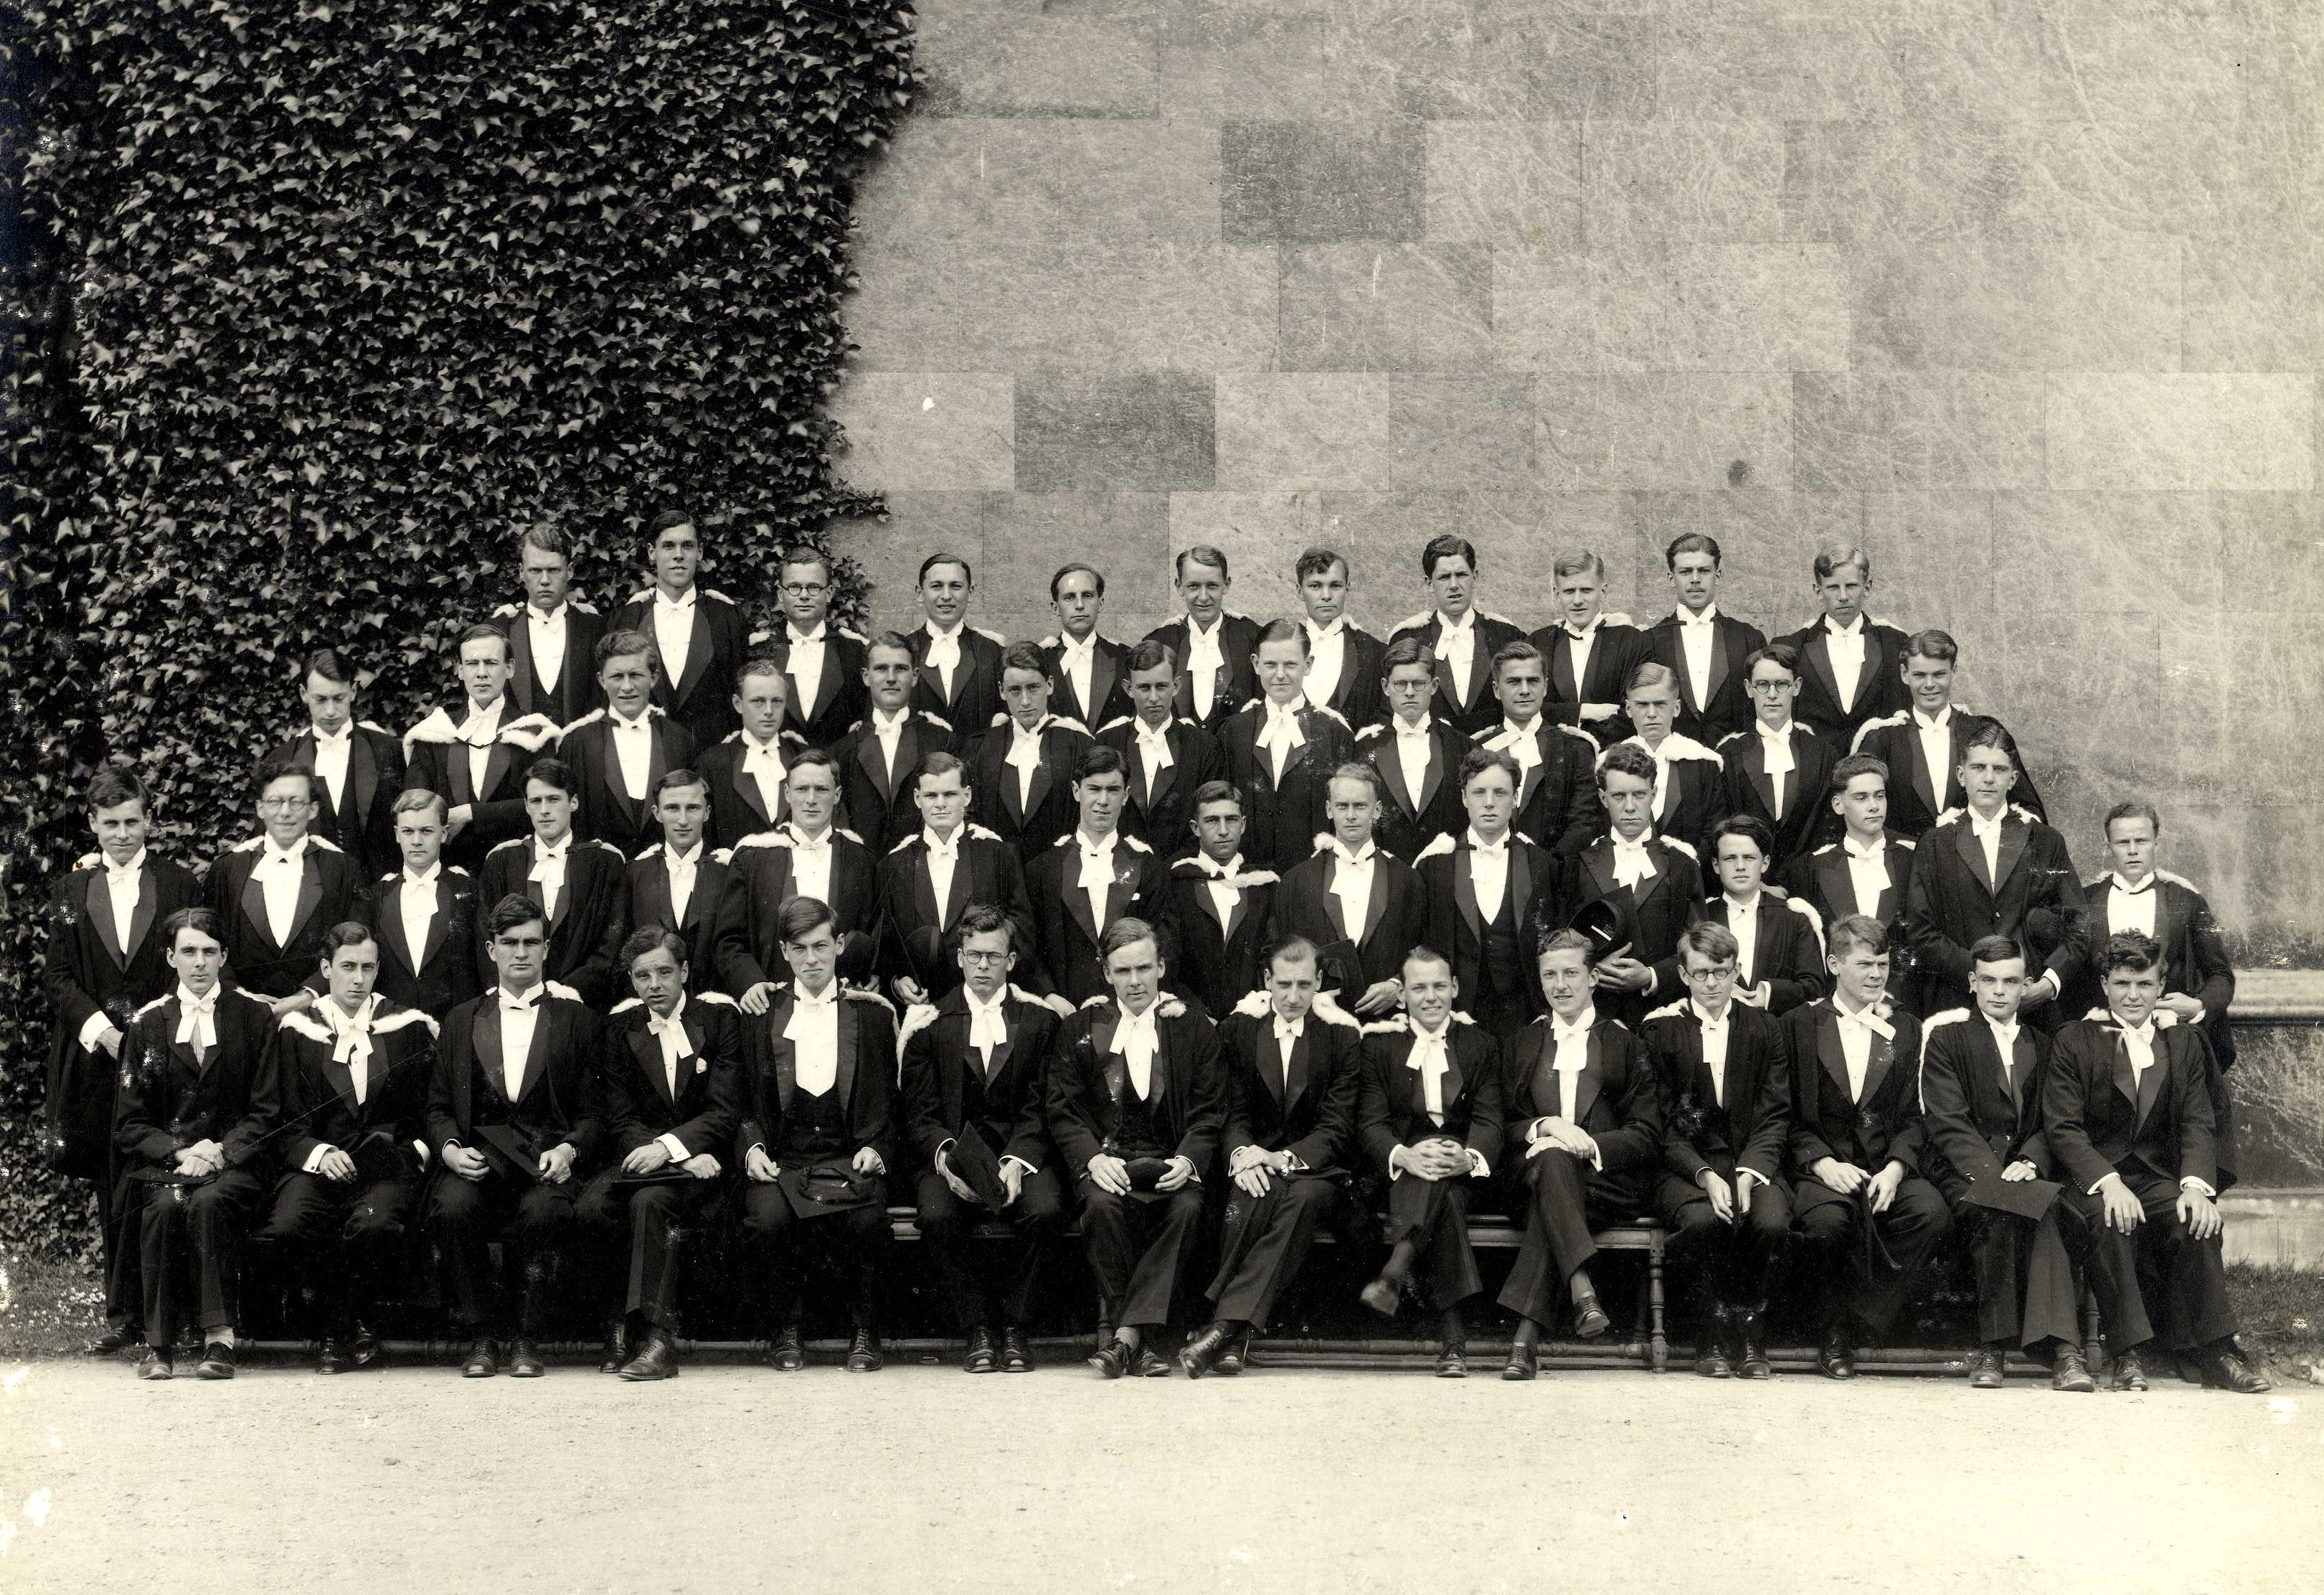 B.A.'s 1934. Alan Turing appears second from the right on the front row